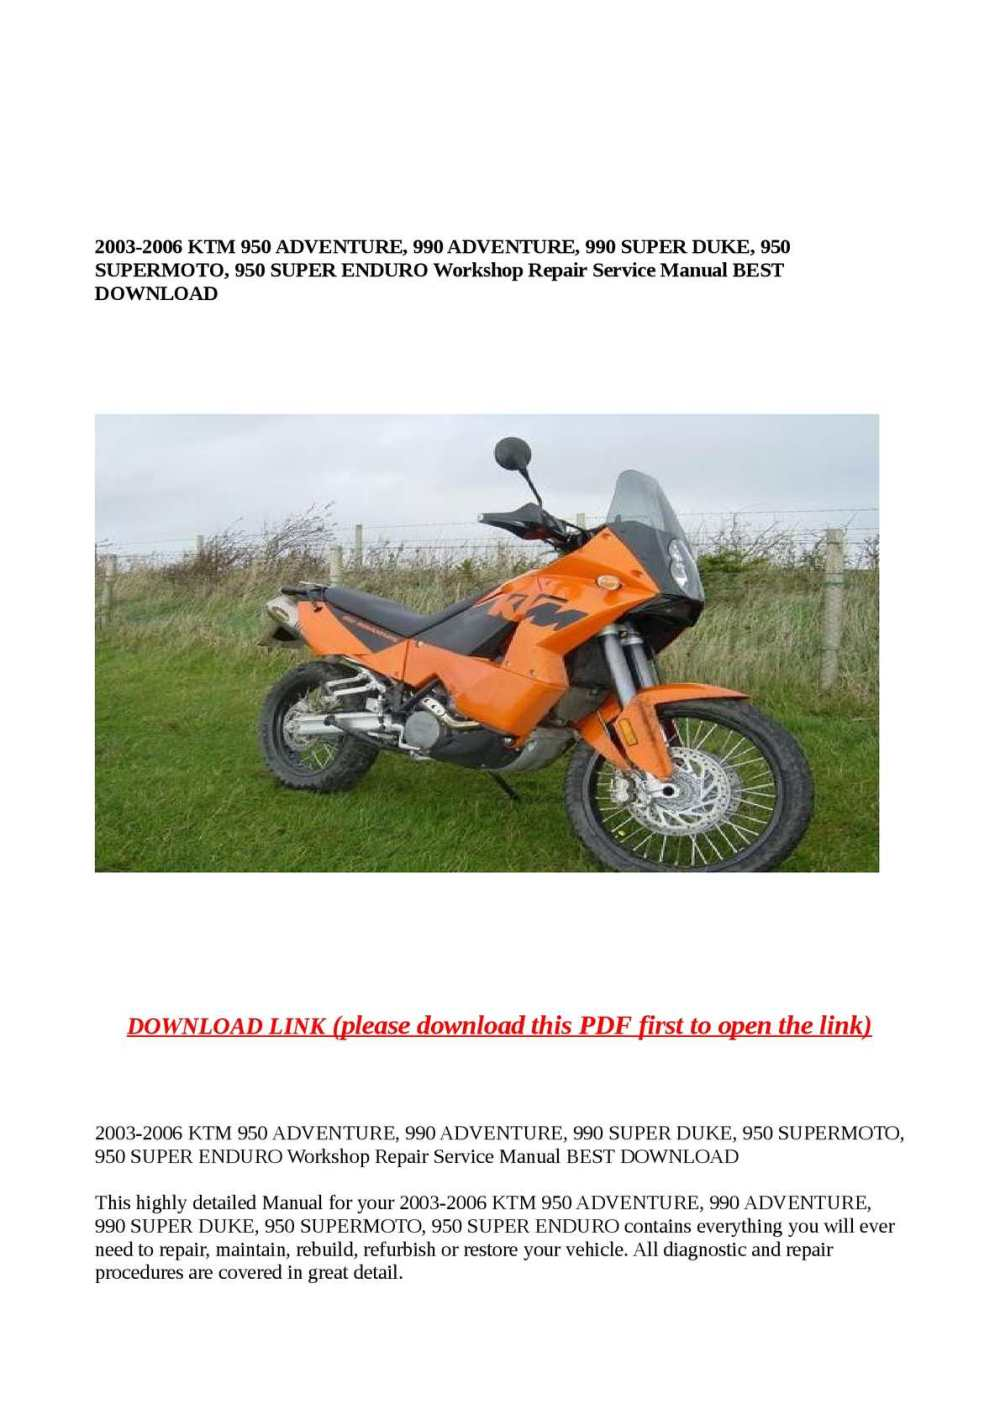 medium resolution of calam o 2003 2006 ktm 950 adventure 990 adventure 990 super duke